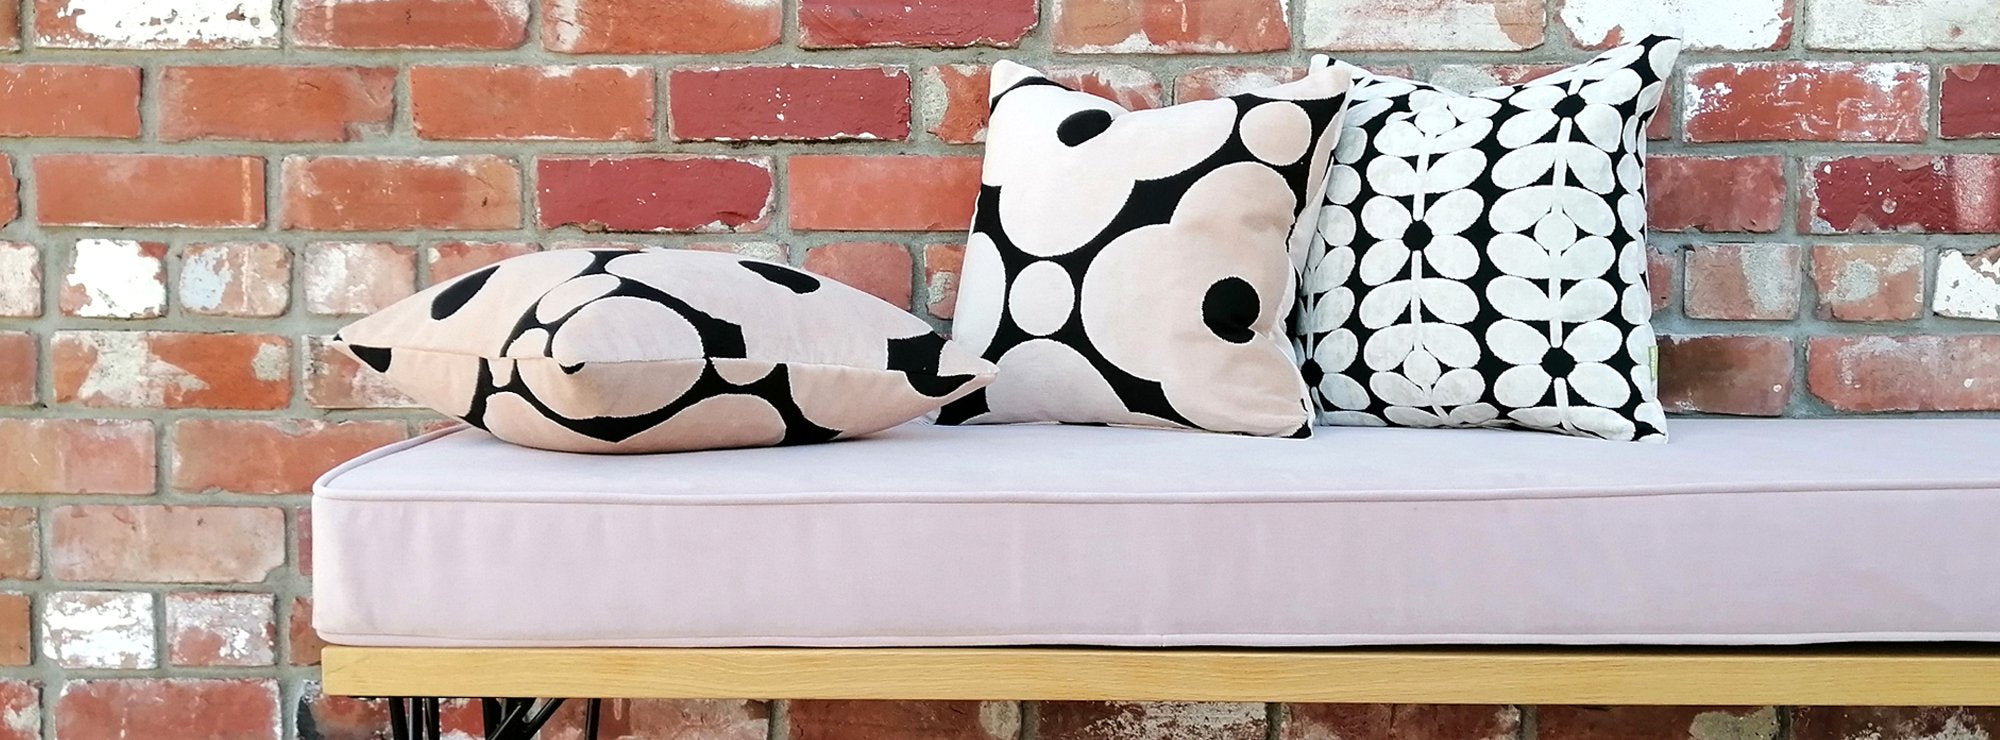 New Marimekko Collection